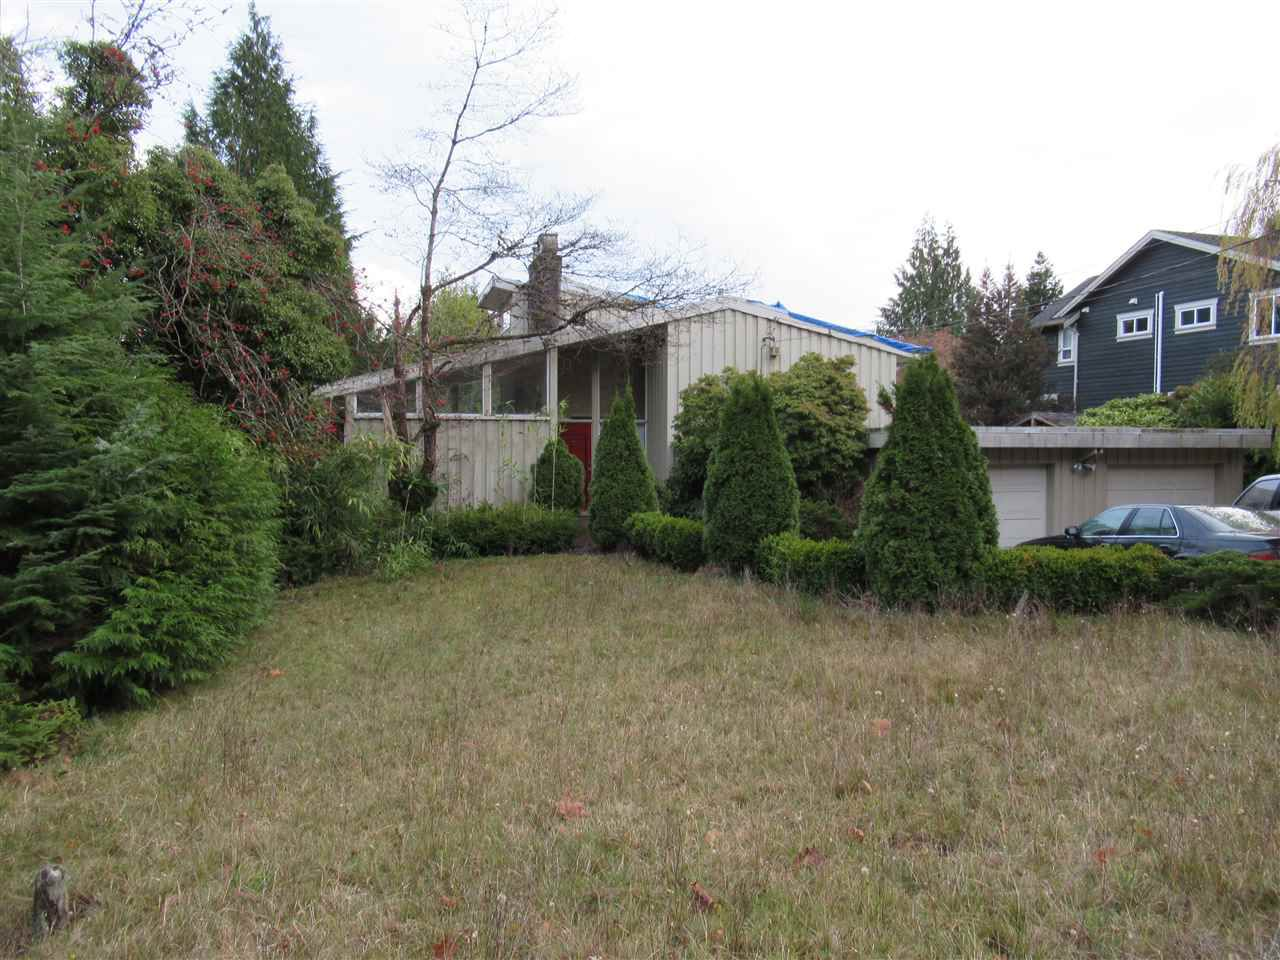 Main Photo: 72 GLENMORE Drive in West Vancouver: Glenmore House for sale : MLS®# R2327224